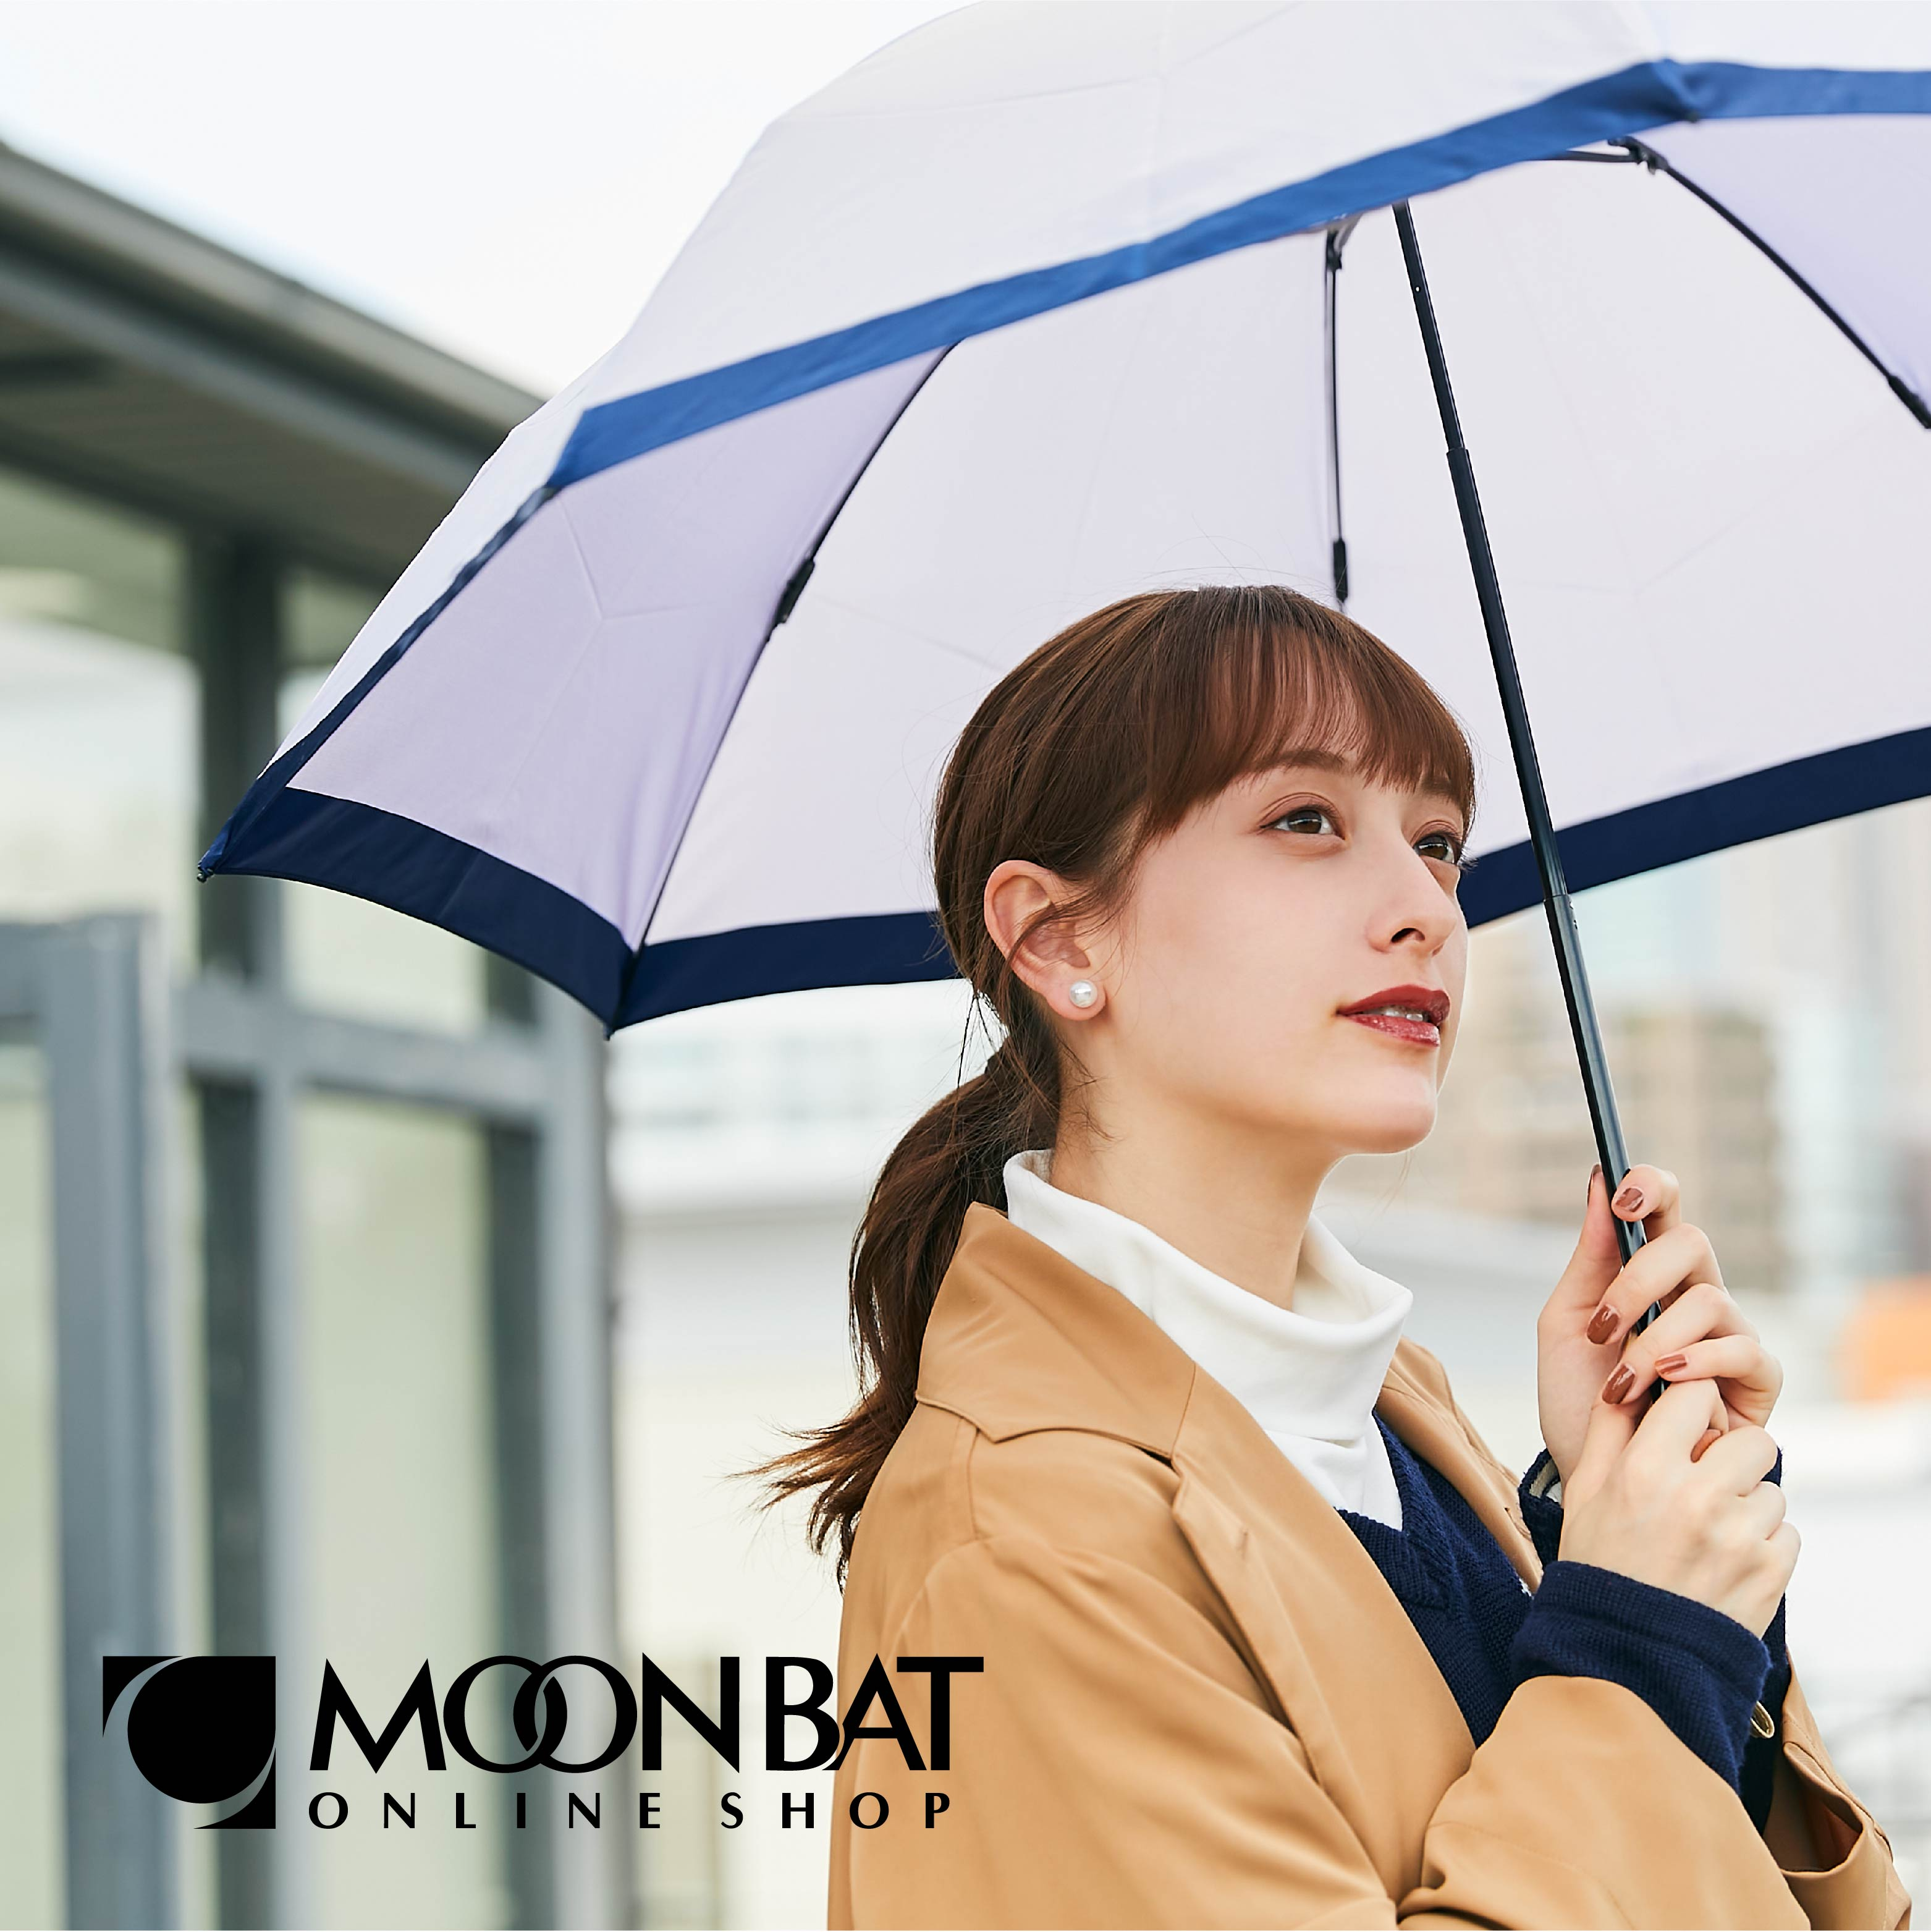 MOONBAT ONLINE SHOP商品一覧